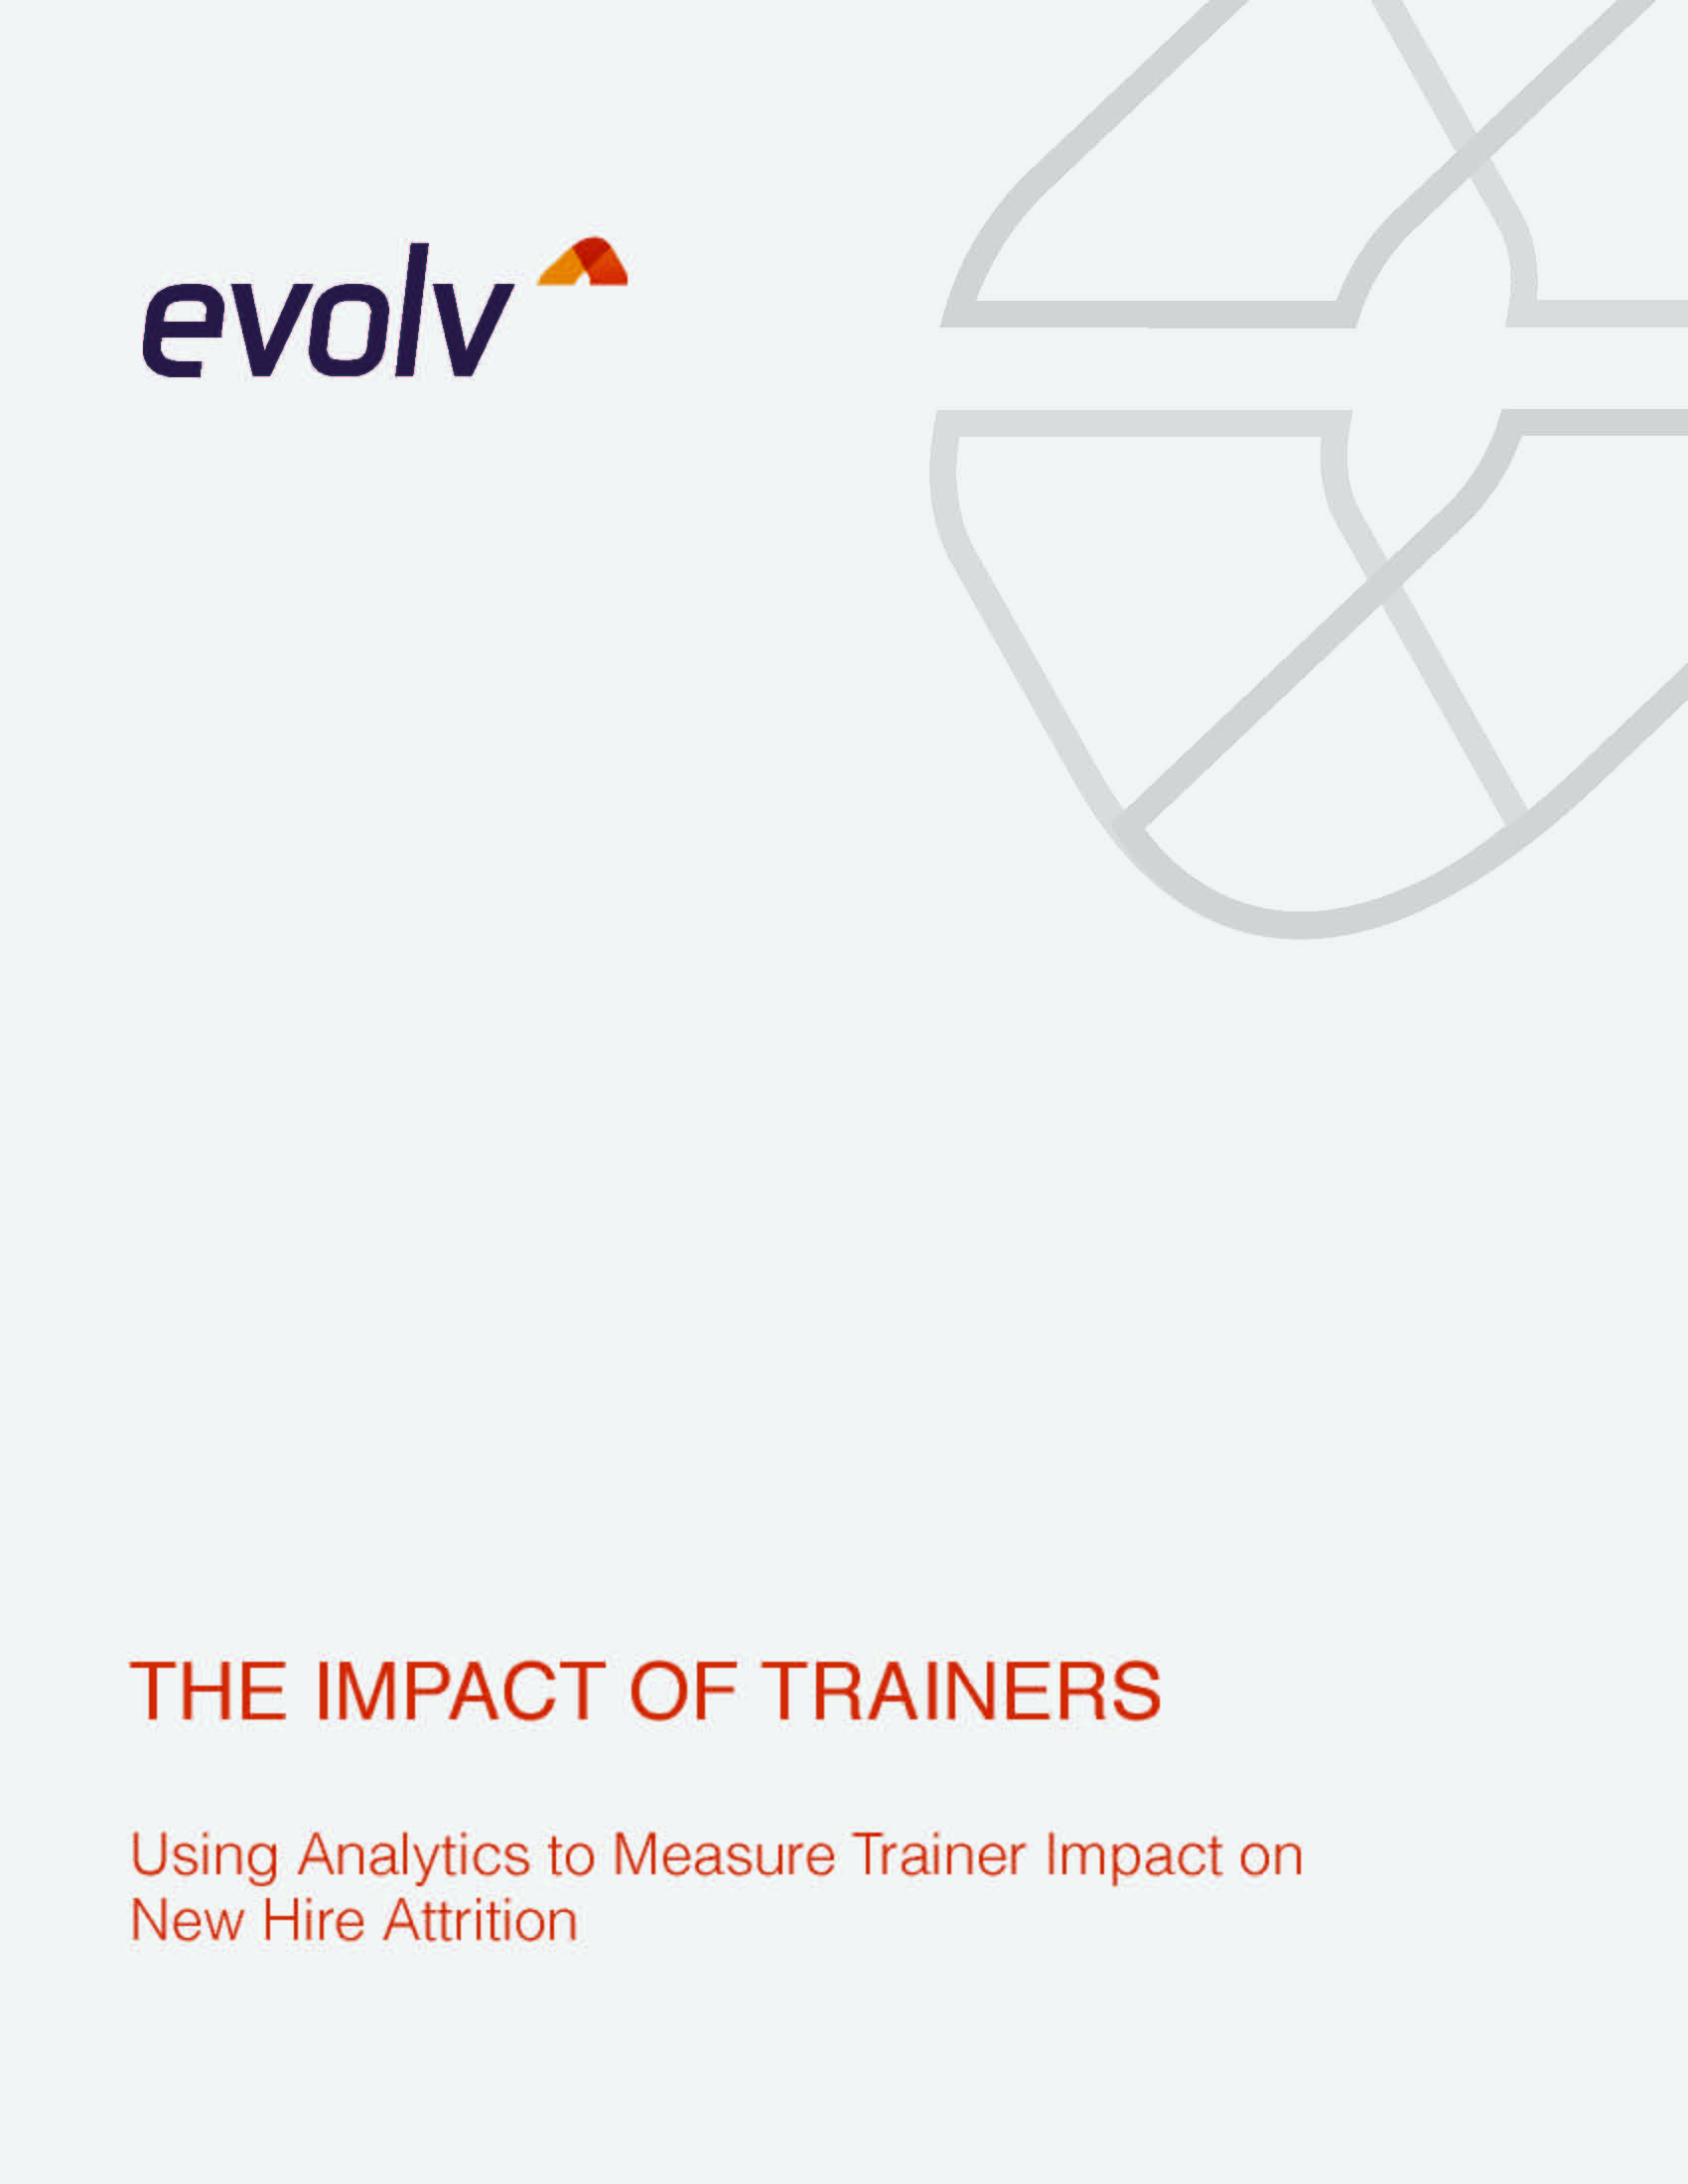 The Impact of Trainers: Using Analytics to Measure Trainer Impact on New Hire Attrition